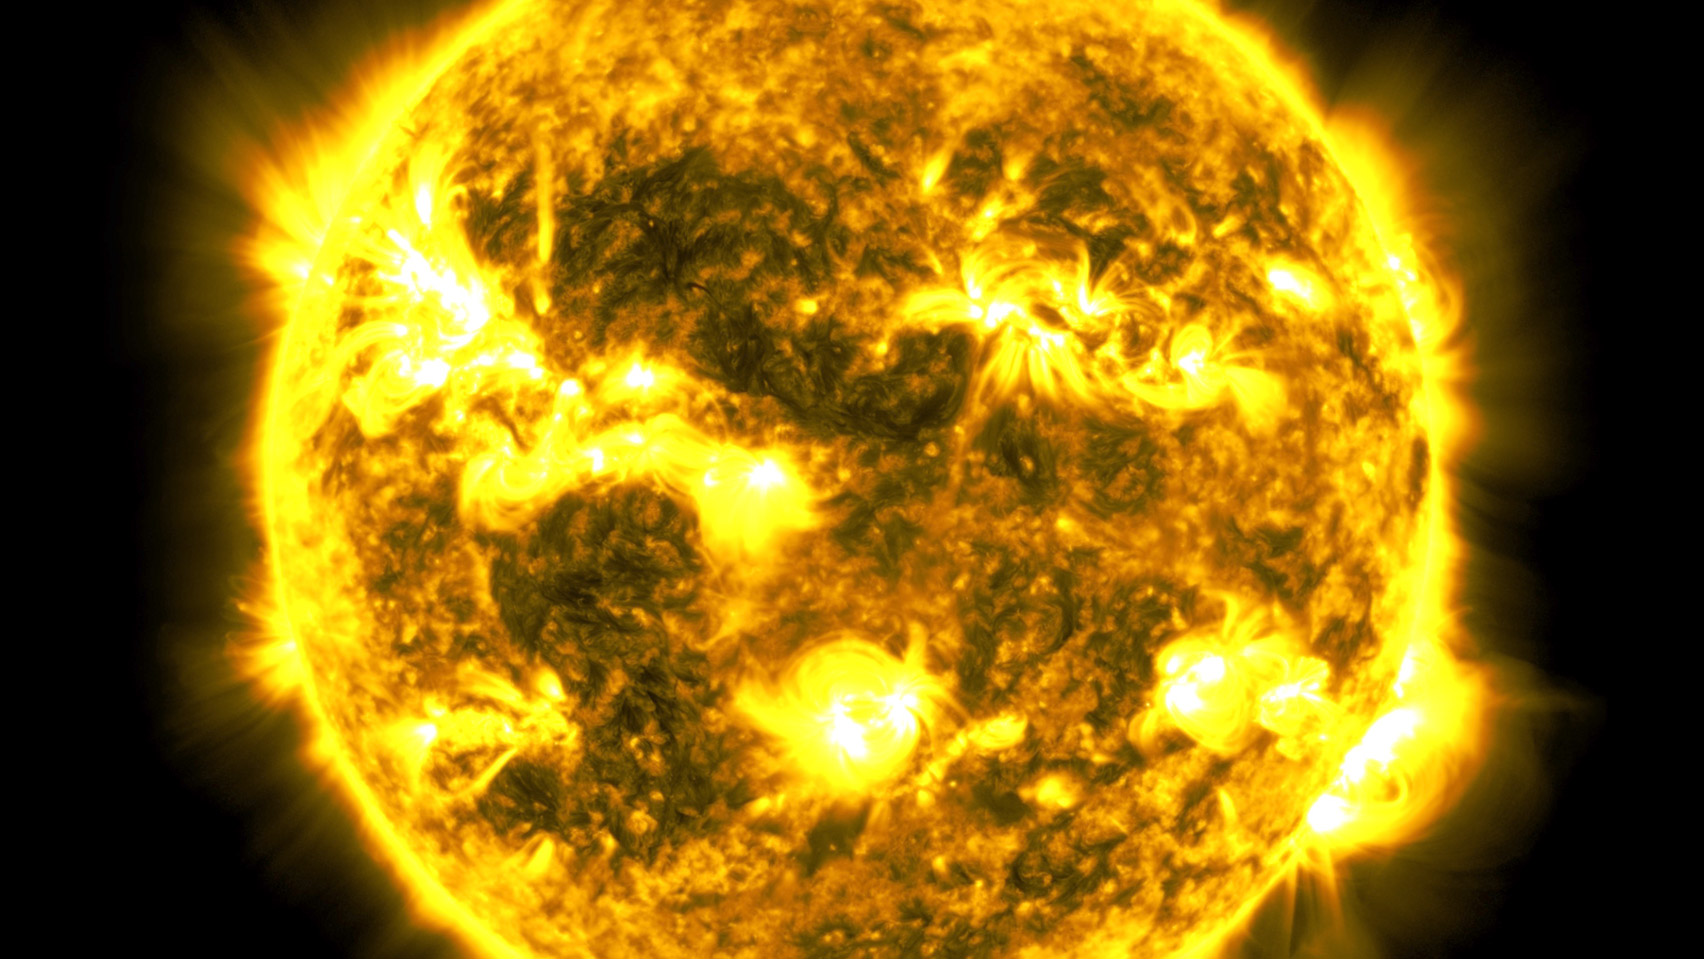 NASA releases decade-long time lapse of the sun